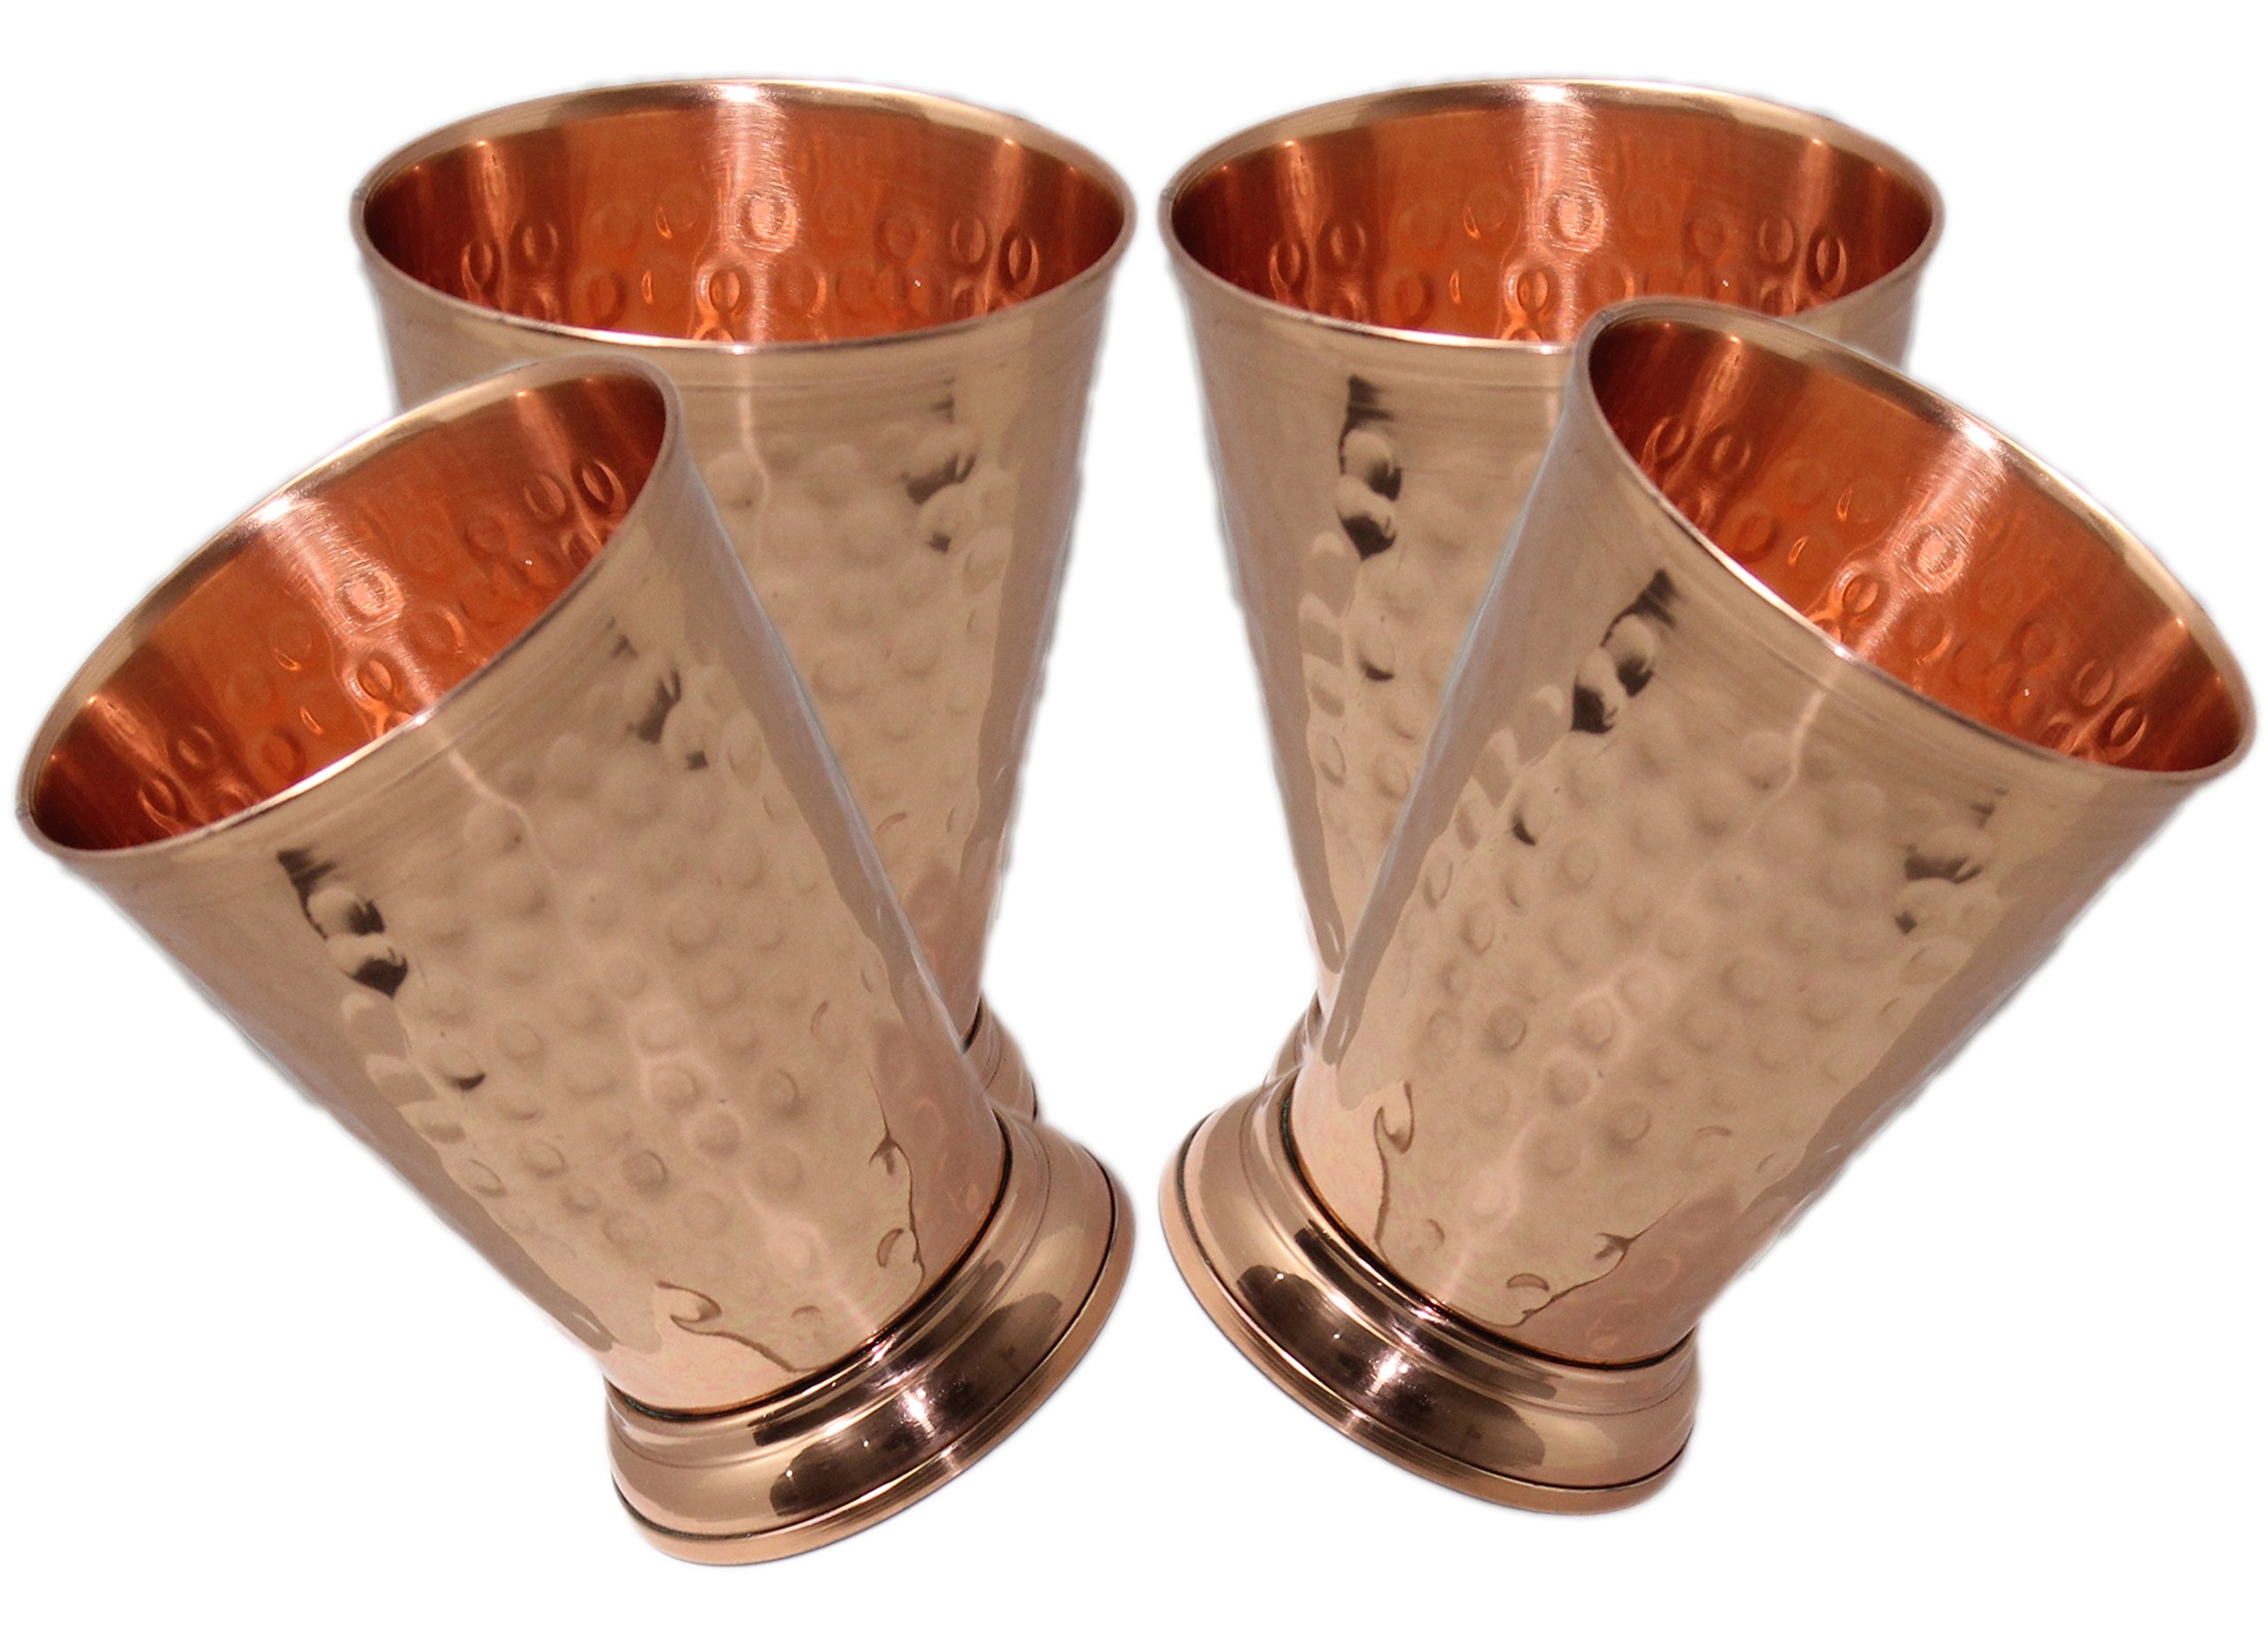 STREET CRAFT Hammered Copper Mint Julep Cup Hammered Copper Moscow Mule Mint Julep Cup 100% Pure Copper Handcrafted Without Doted Capacity 12 Oz.Set of 4